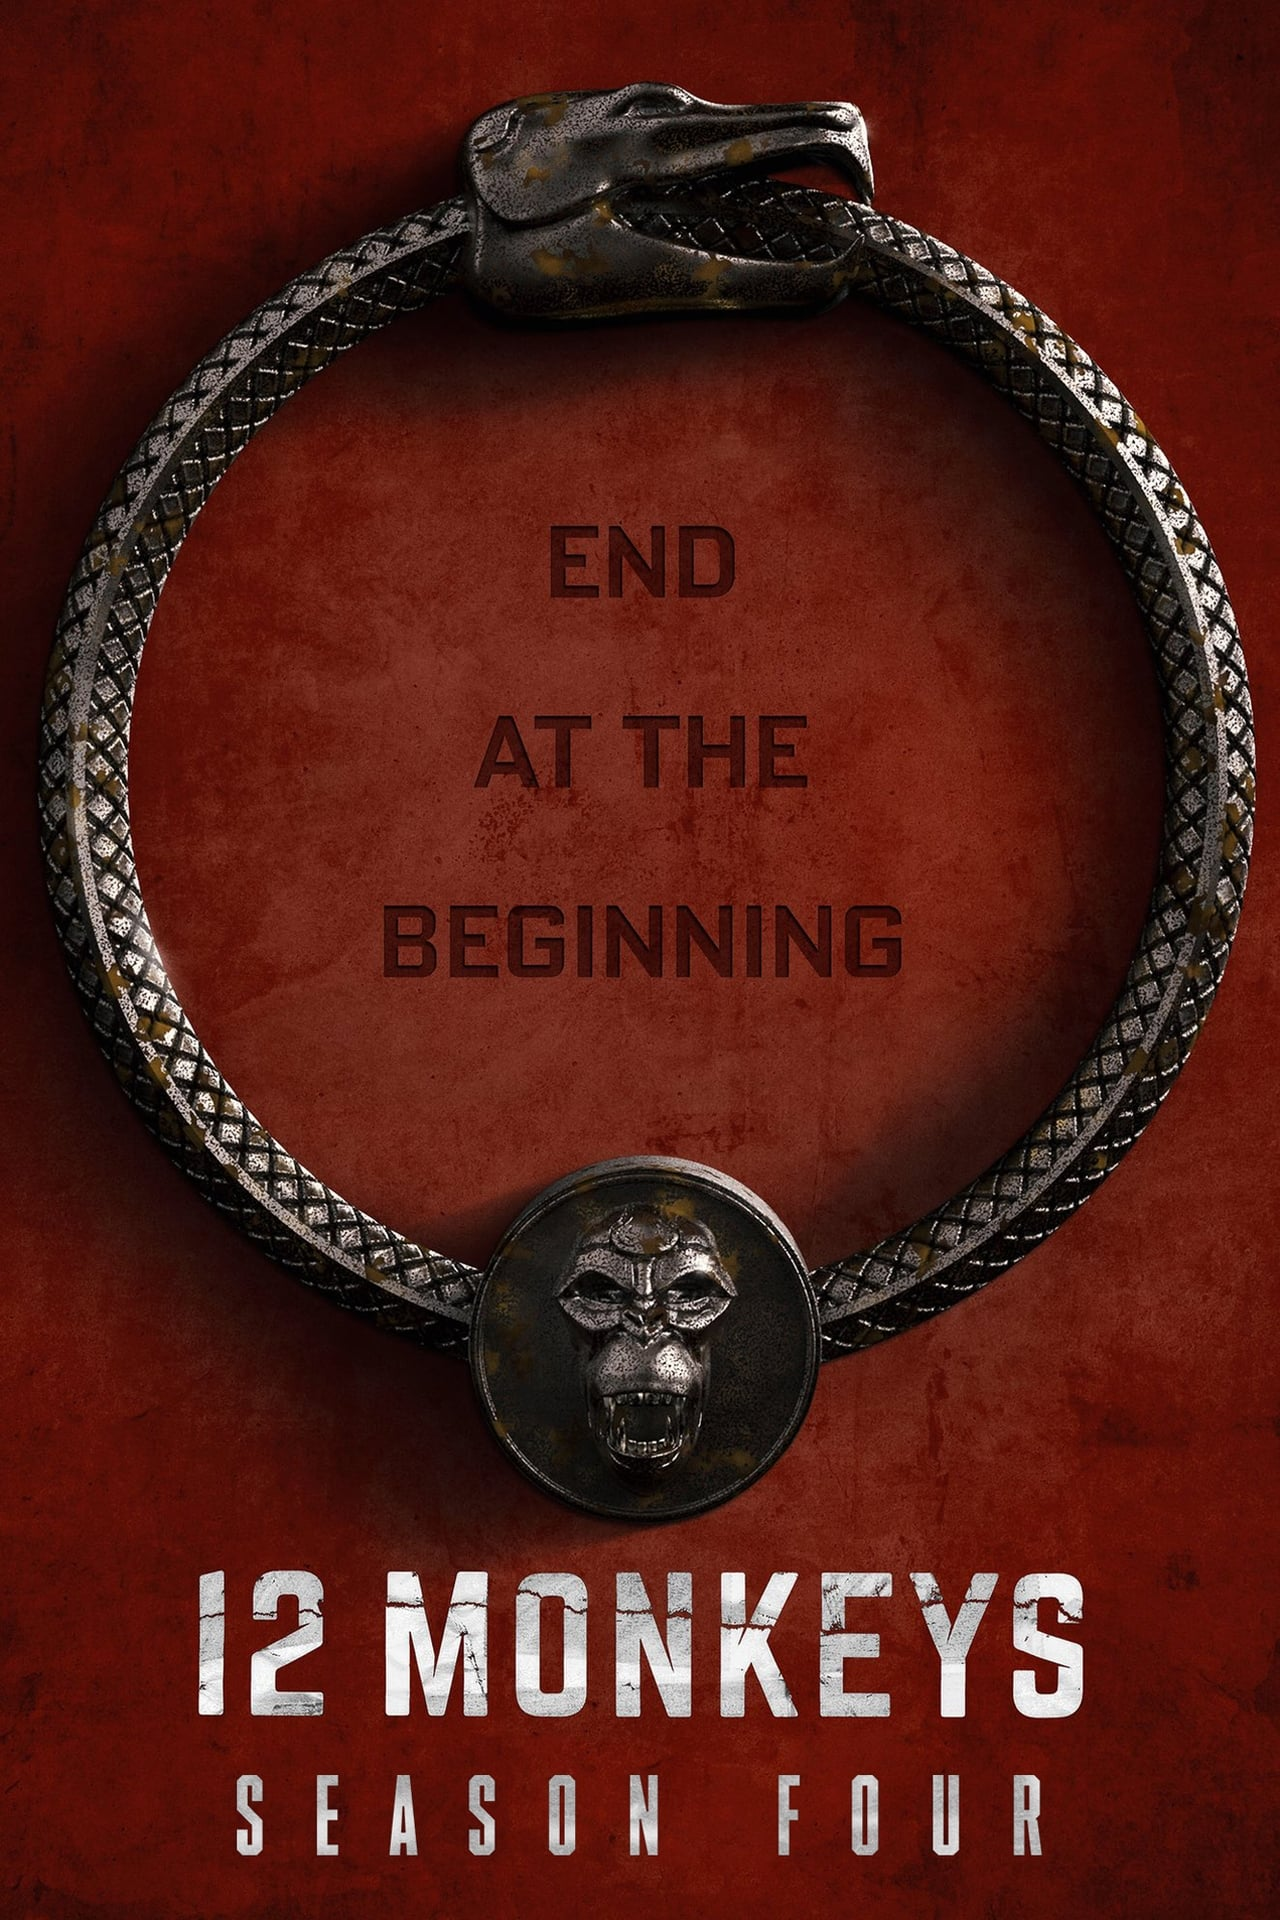 12 Monkeys Season 4